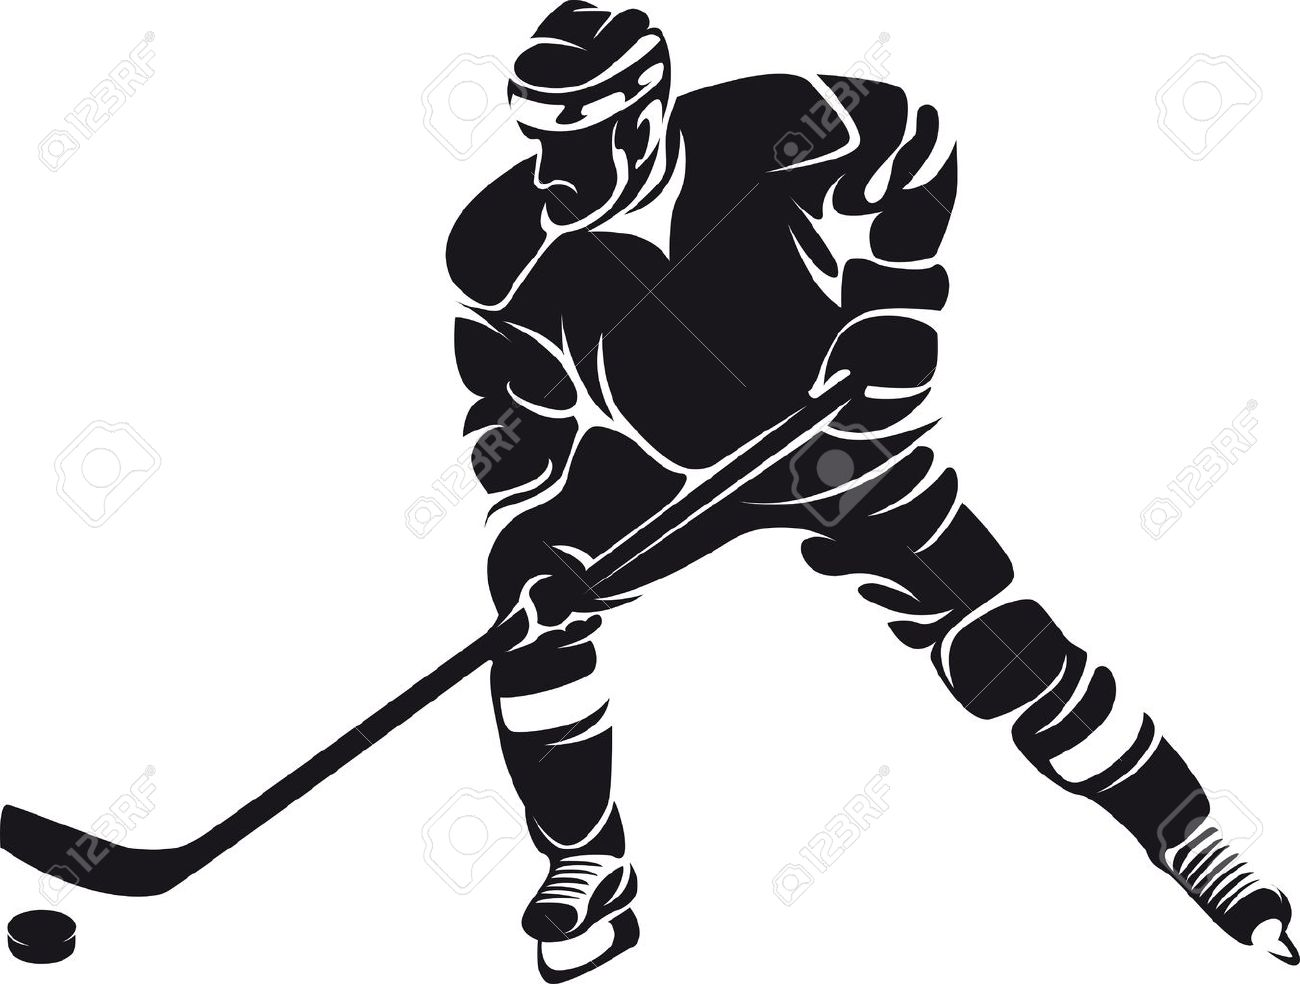 1300x984 Hockey Player, Silhouette Royalty Free Cliparts, Vectors,